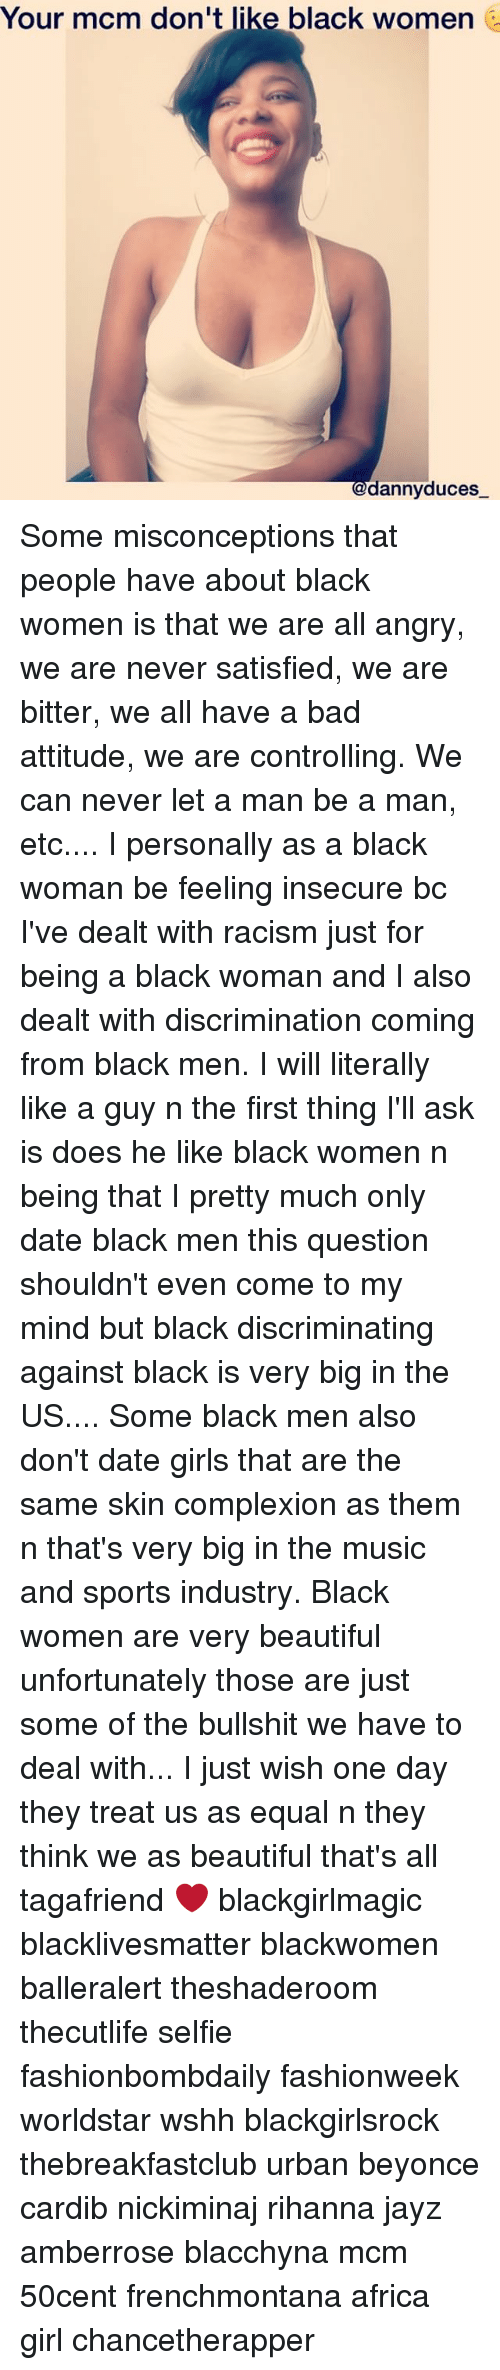 Equalism: Your mcm don't like black women  @dannyduces Some misconceptions that people have about black women is that we are all angry, we are never satisfied, we are bitter, we all have a bad attitude, we are controlling. We can never let a man be a man, etc.... I personally as a black woman be feeling insecure bc I've dealt with racism just for being a black woman and I also dealt with discrimination coming from black men. I will literally like a guy n the first thing I'll ask is does he like black women n being that I pretty much only date black men this question shouldn't even come to my mind but black discriminating against black is very big in the US.... Some black men also don't date girls that are the same skin complexion as them n that's very big in the music and sports industry. Black women are very beautiful unfortunately those are just some of the bullshit we have to deal with... I just wish one day they treat us as equal n they think we as beautiful that's all tagafriend ❤ blackgirlmagic blacklivesmatter blackwomen balleralert theshaderoom thecutlife selfie fashionbombdaily fashionweek worldstar wshh blackgirlsrock thebreakfastclub urban beyonce cardib nickiminaj rihanna jayz amberrose blacchyna mcm 50cent frenchmontana africa girl chancetherapper